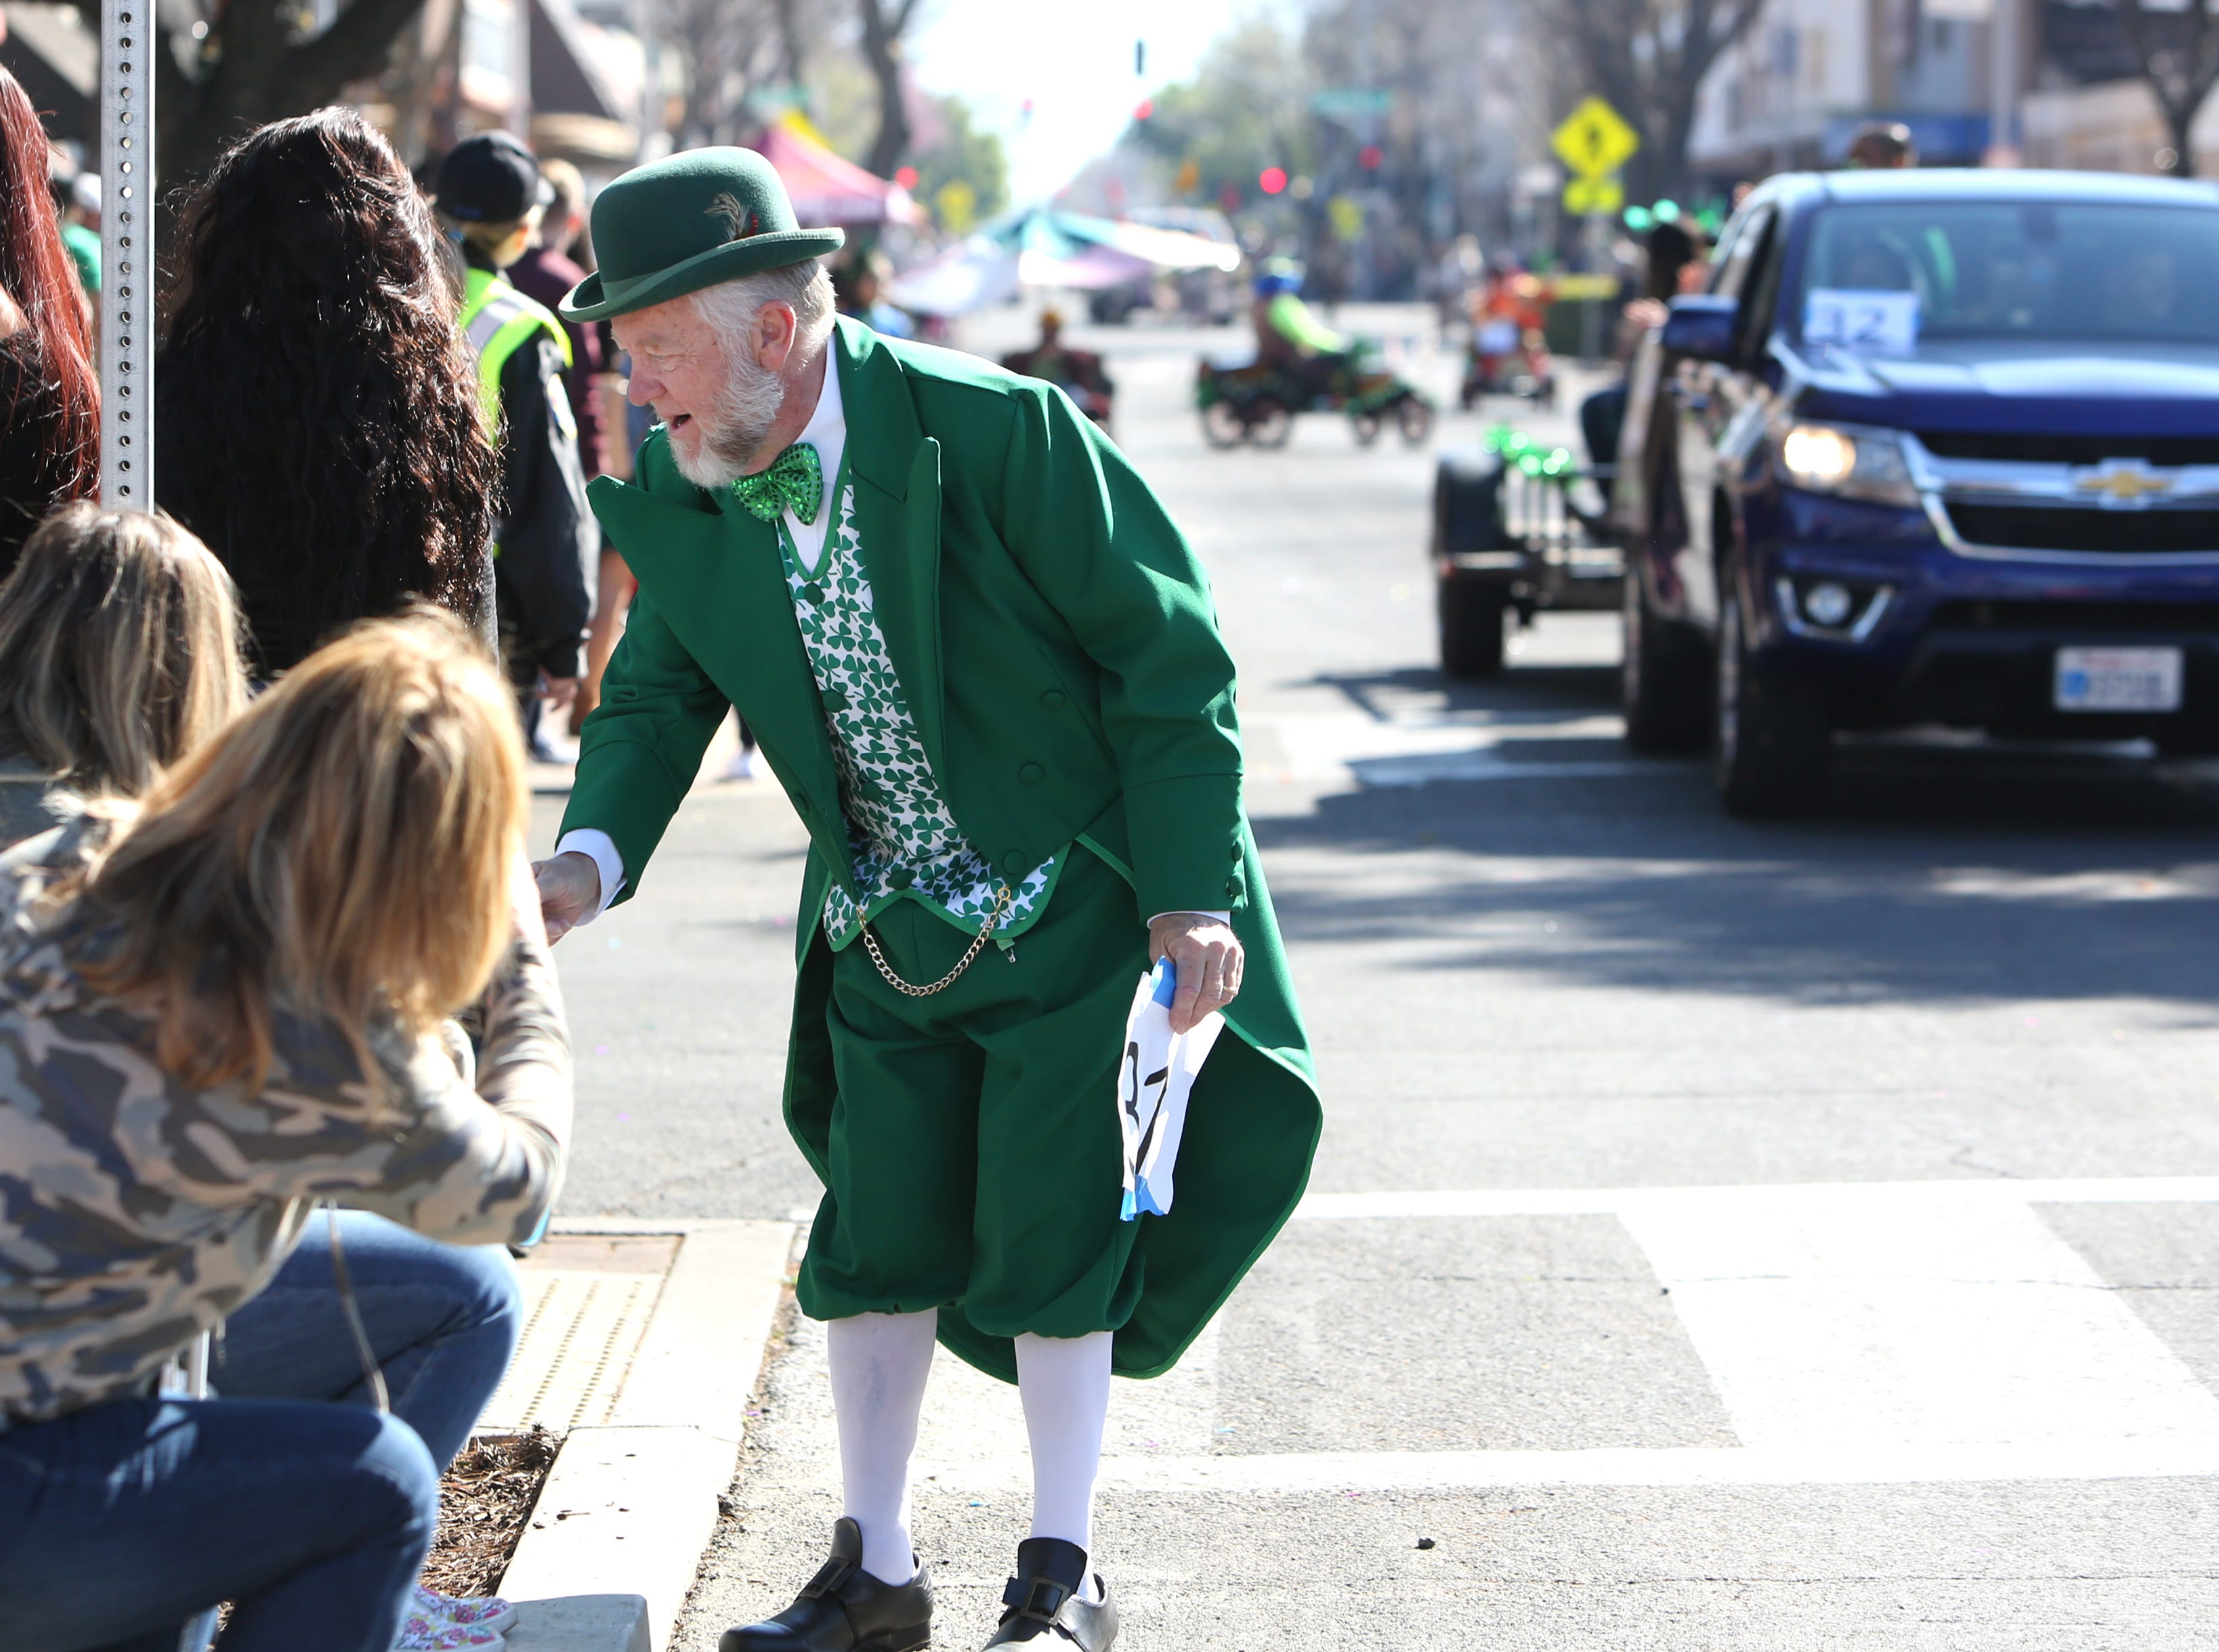 Bill Bates stops to shake hands with the crowds at this year's St. Patrick's Day parade rolling through Main Street Saturday, March 16, 2019 in Visalia, Calif.